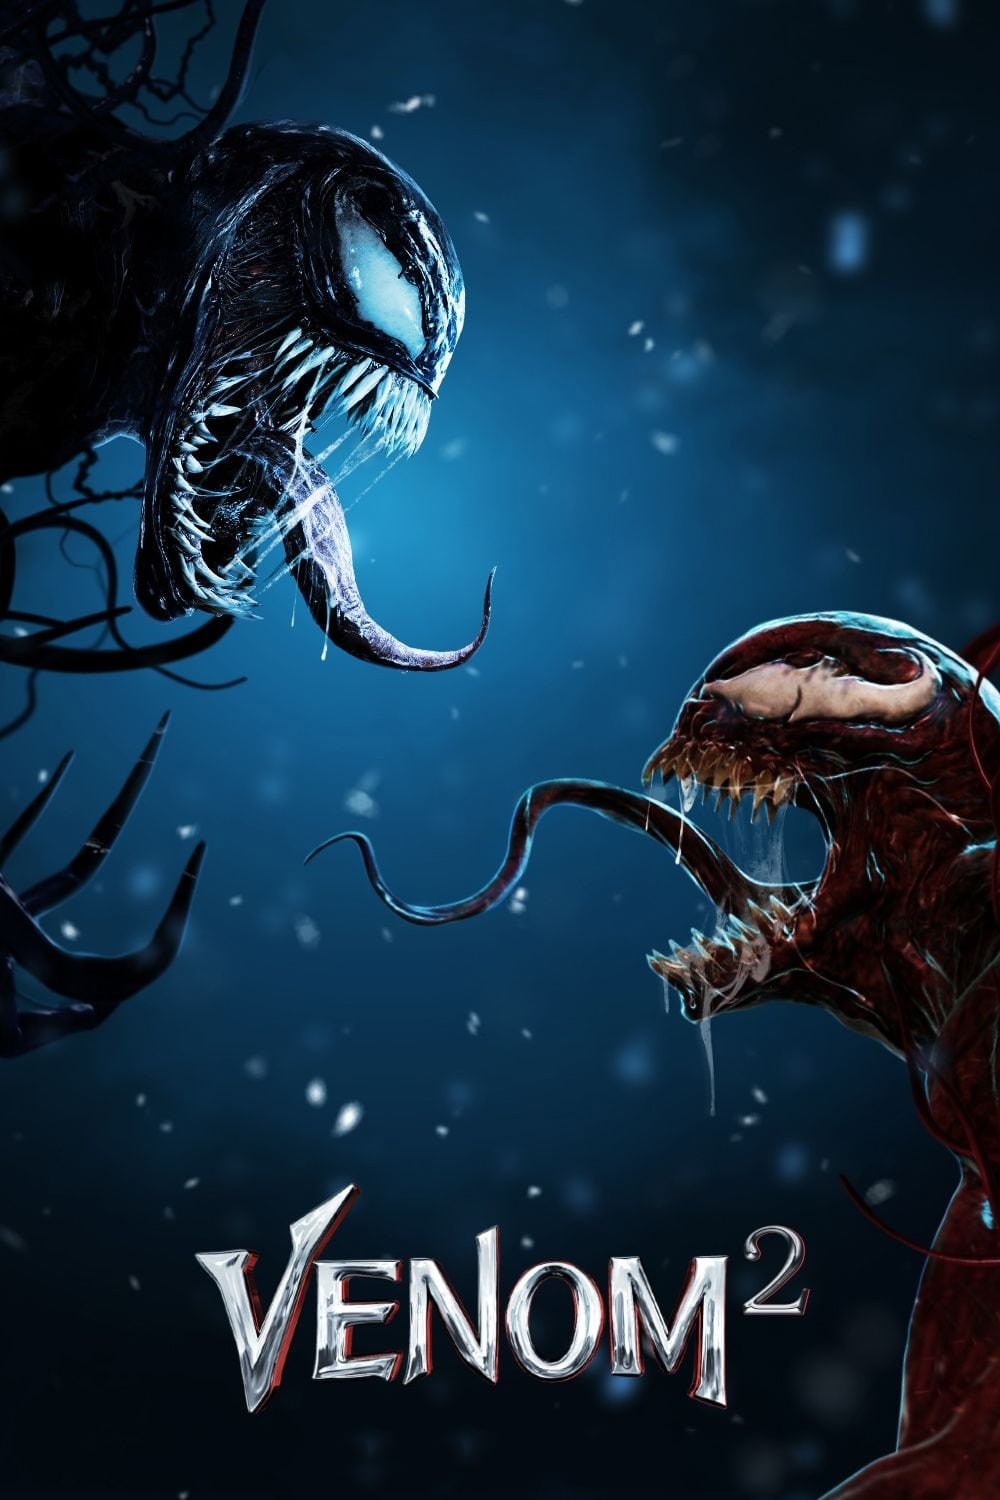 ვენომი 2 / Venom: Let There Be Carnage